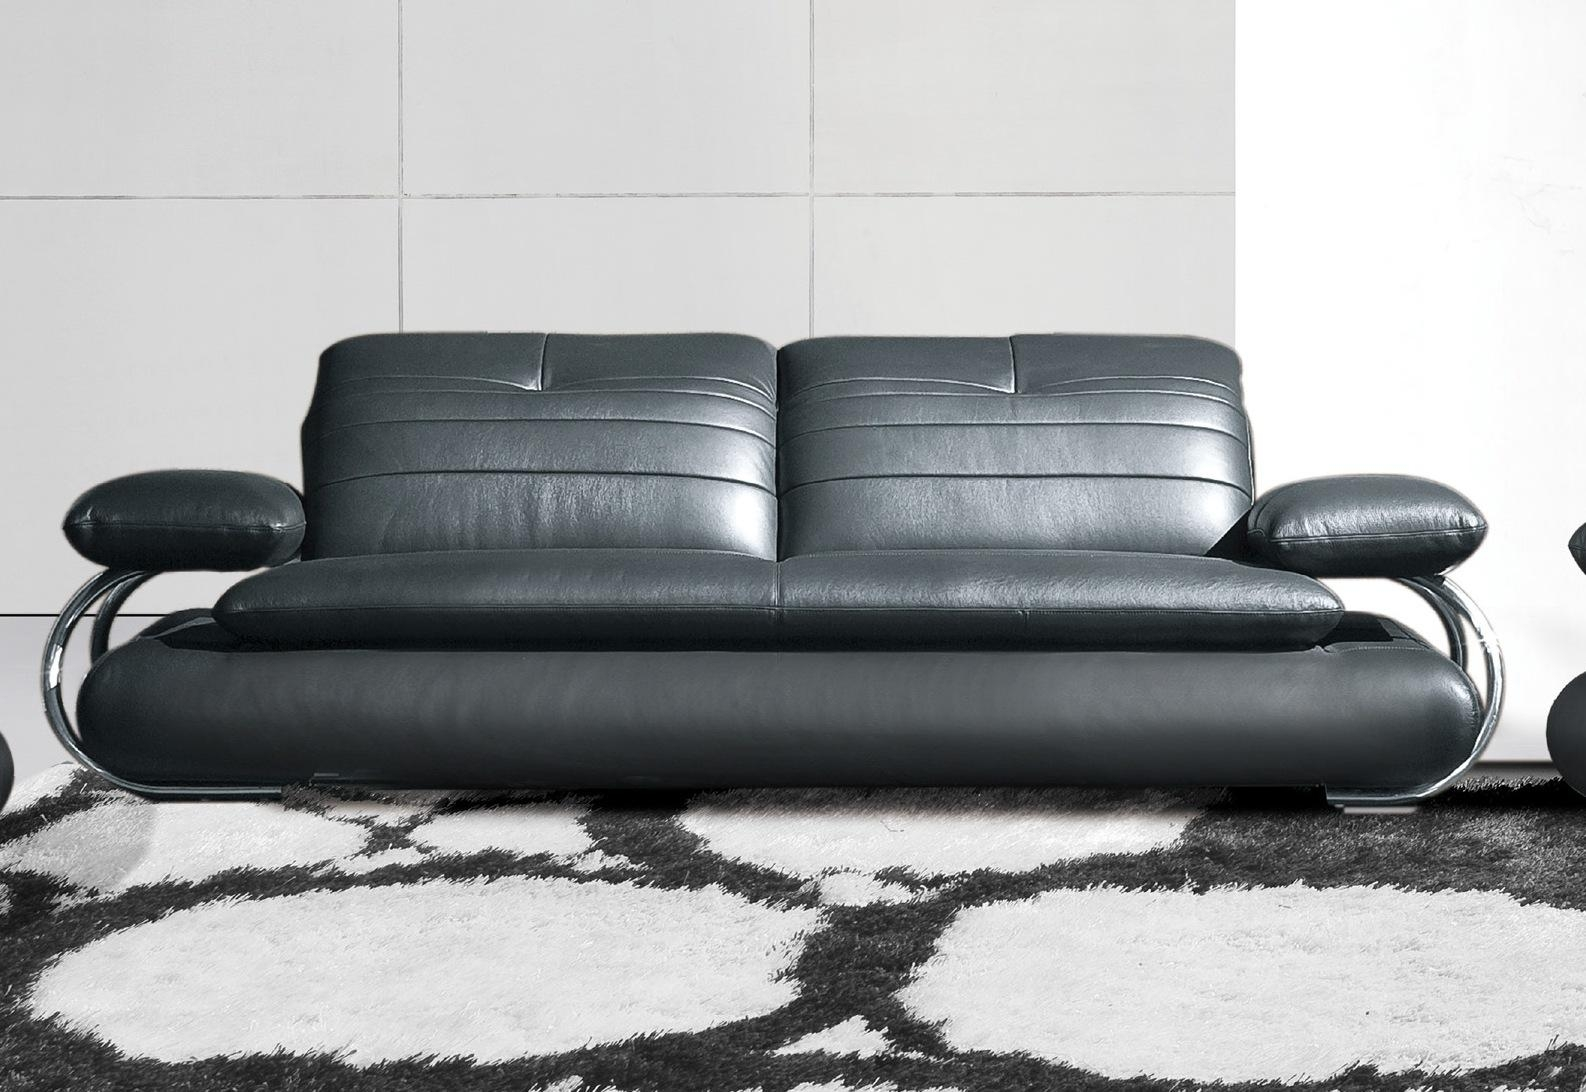 Sofas Center : Leather Sofack Faux Couches Chairs Ottomans Ikea Within Contemporary Black Leather Sofas (Image 19 of 20)